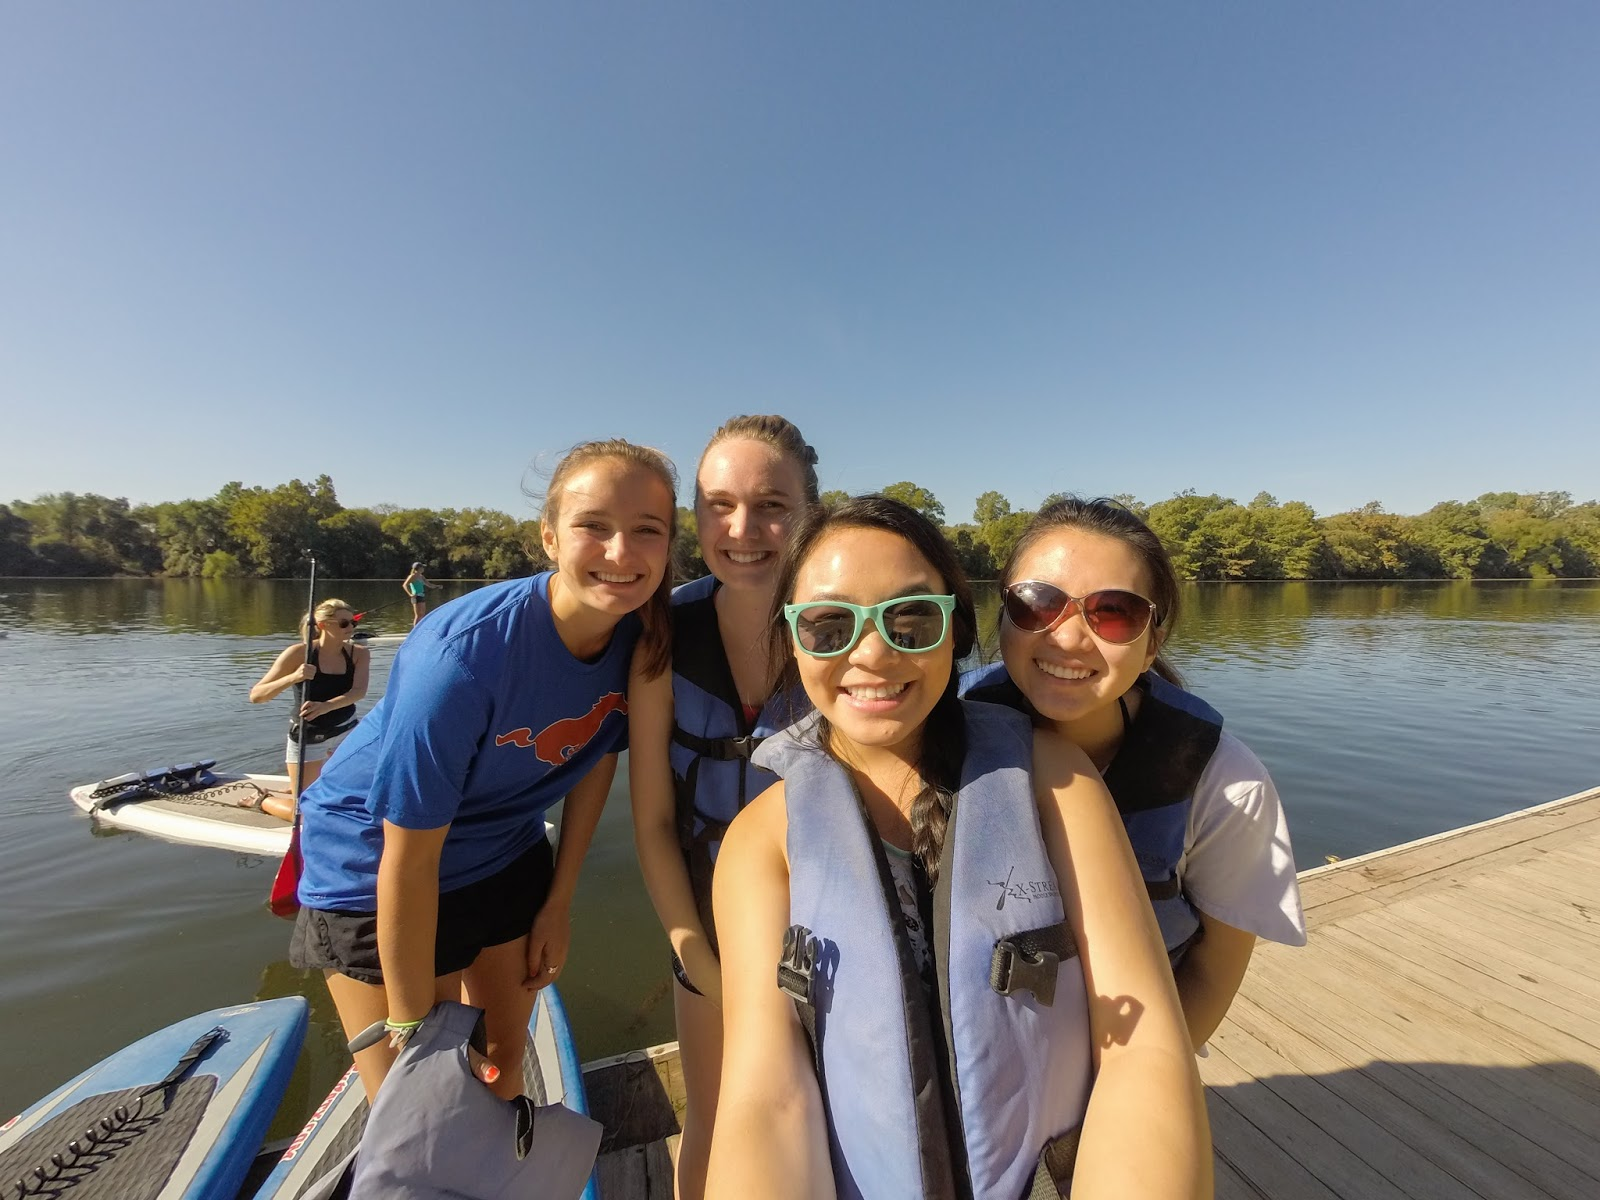 paddleboard experience review austin